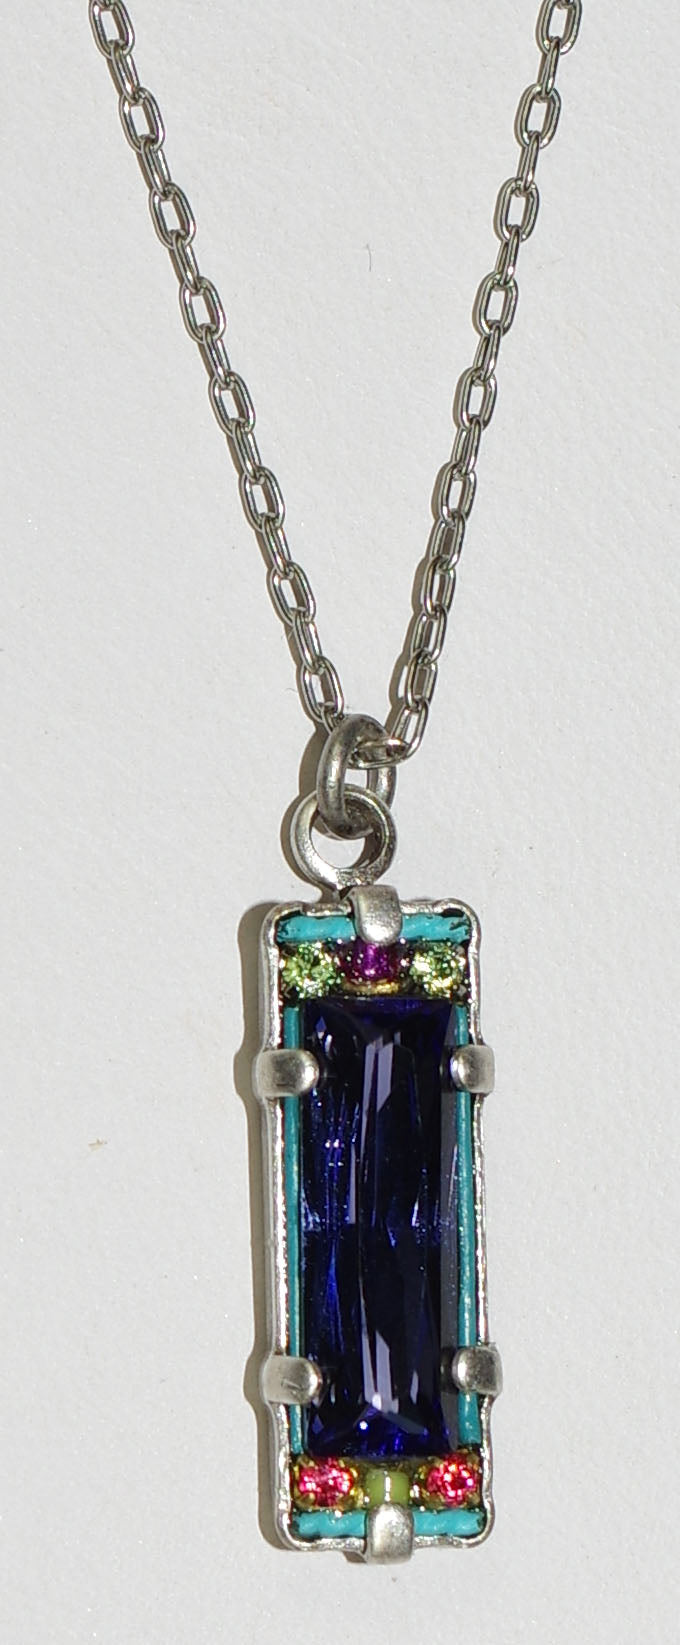 "FIREFLY NECKLACE BAGUETTE TANZ: multi color stones in 3/4"" pendant, SILVER 17"" adjustable chain"